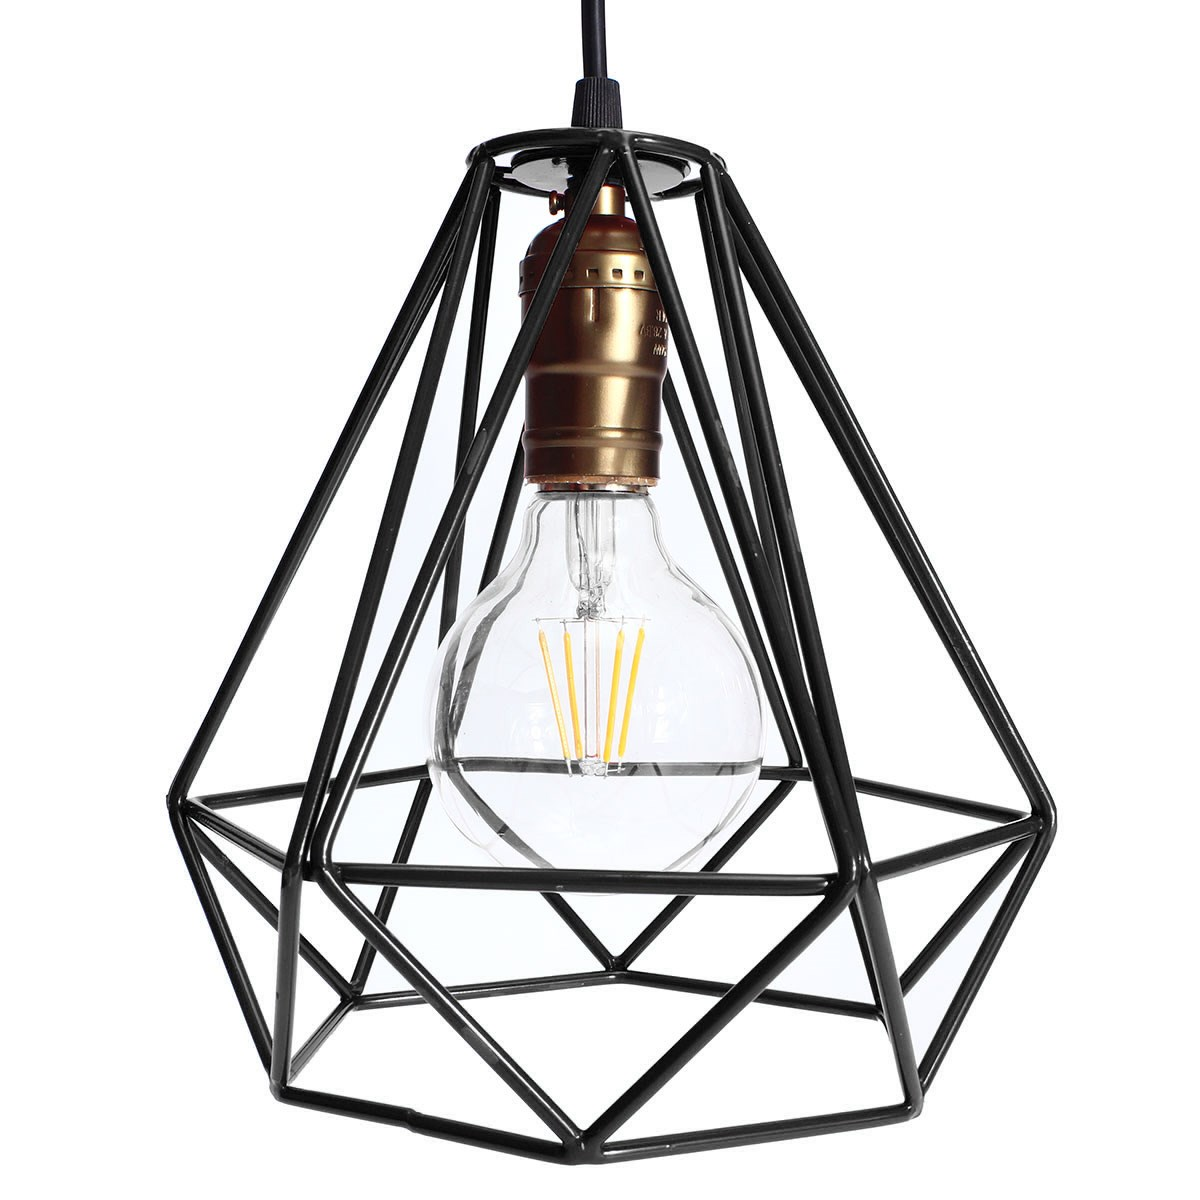 lampshade modern lamp cover loft industrial edison metal wire frame rh aliexpress com Wiring a Light Switch and Outlet Together Wiring a Switch to a Light Fixture